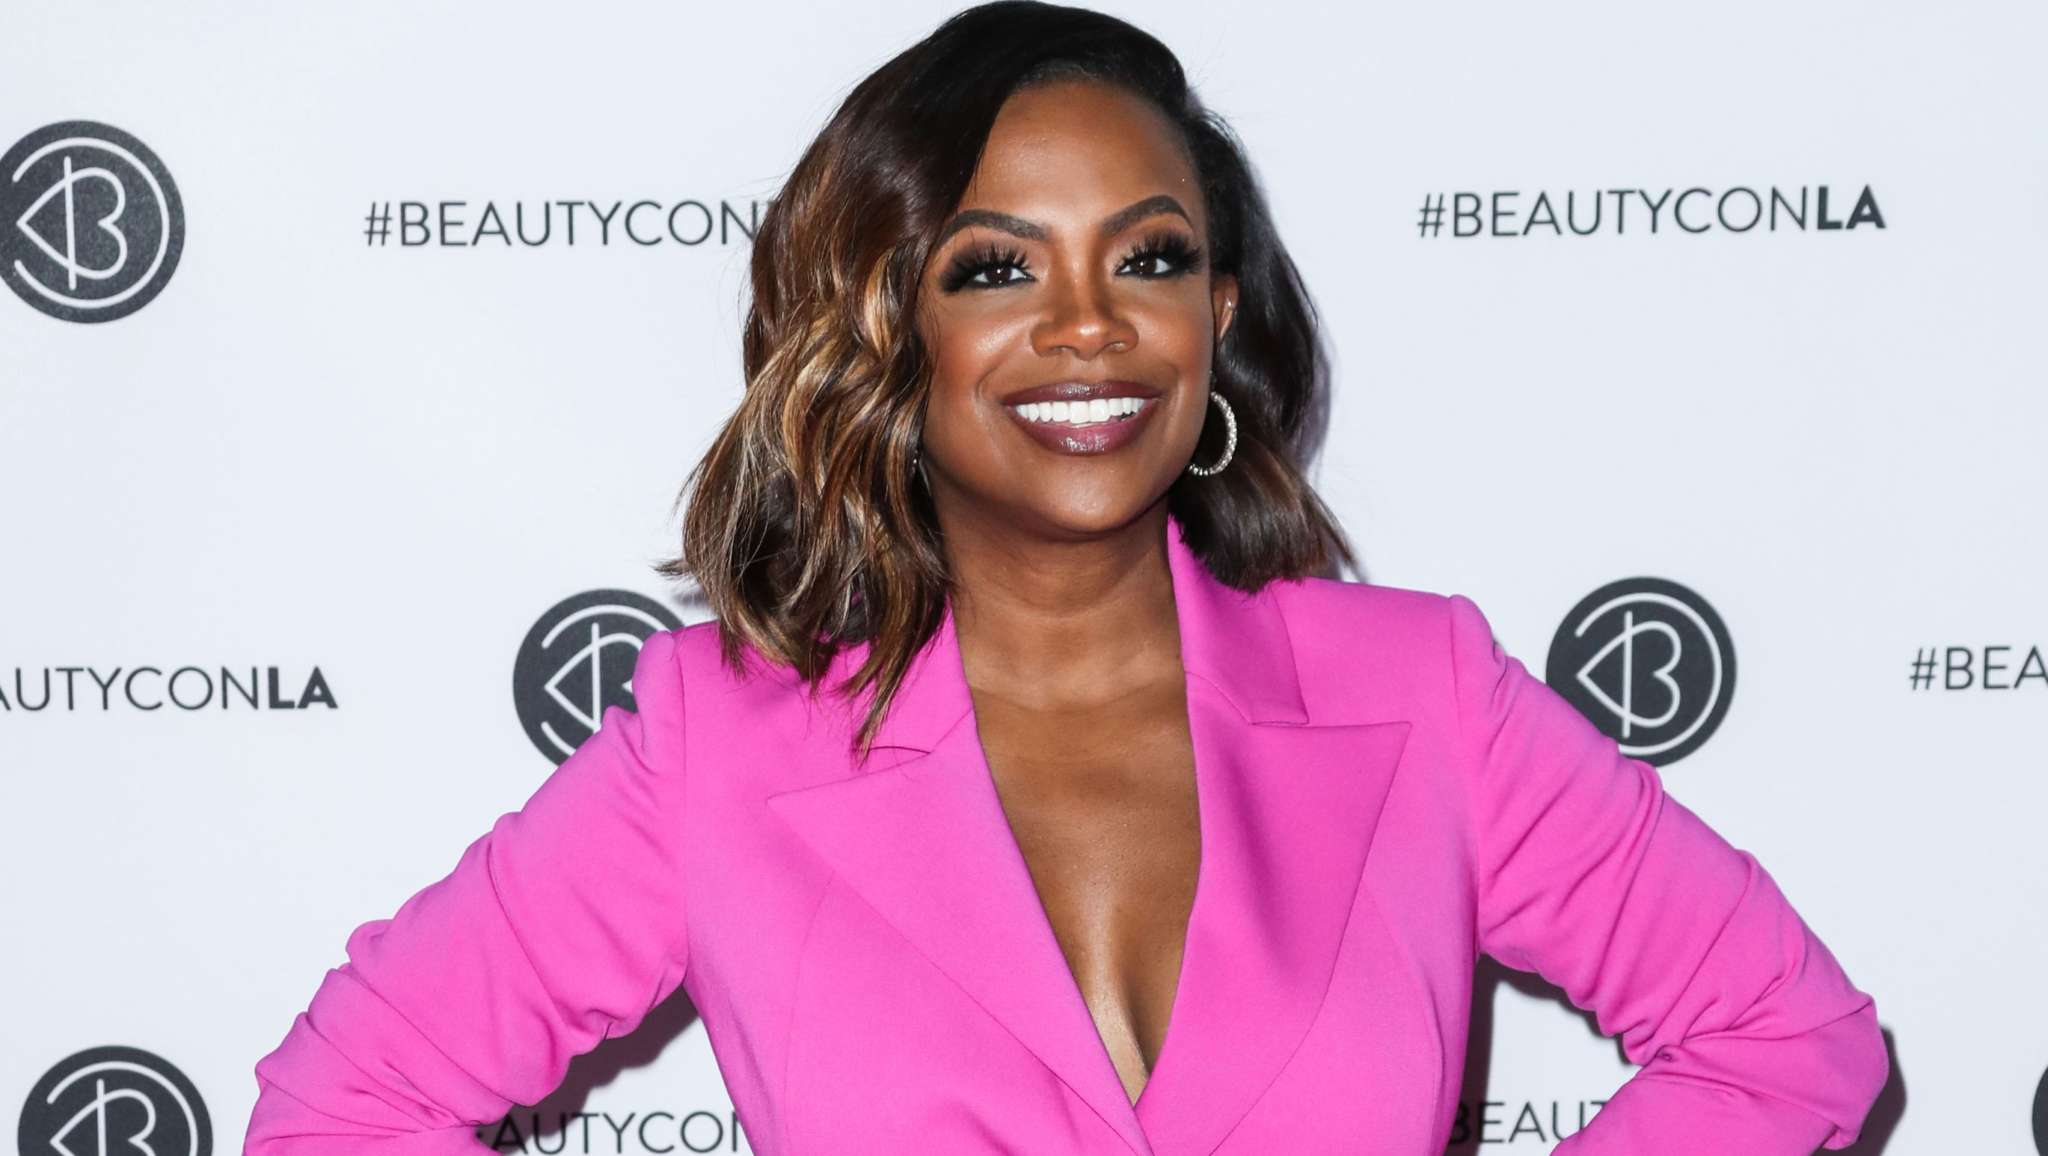 Kandi Burruss Shows Fans The Shoes She's Been Keeping For A Decade - Check Out The Outfit She Paired Them With